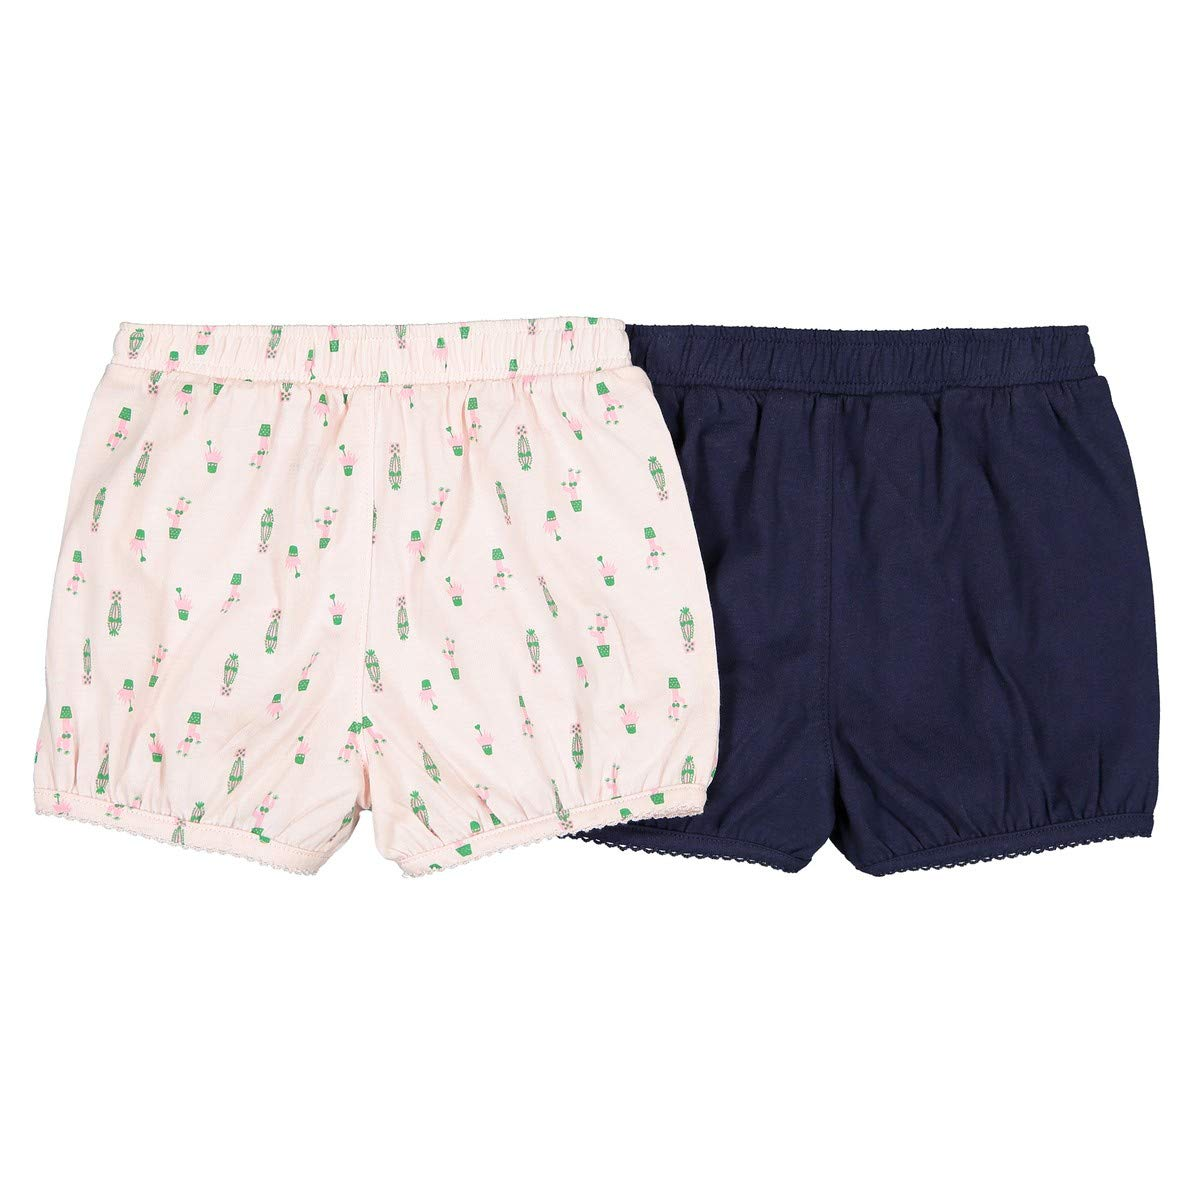 1 Month-3 Years La Redoute Collections Big Girls Pack of 2 Plain and Printed Bloomer Shorts